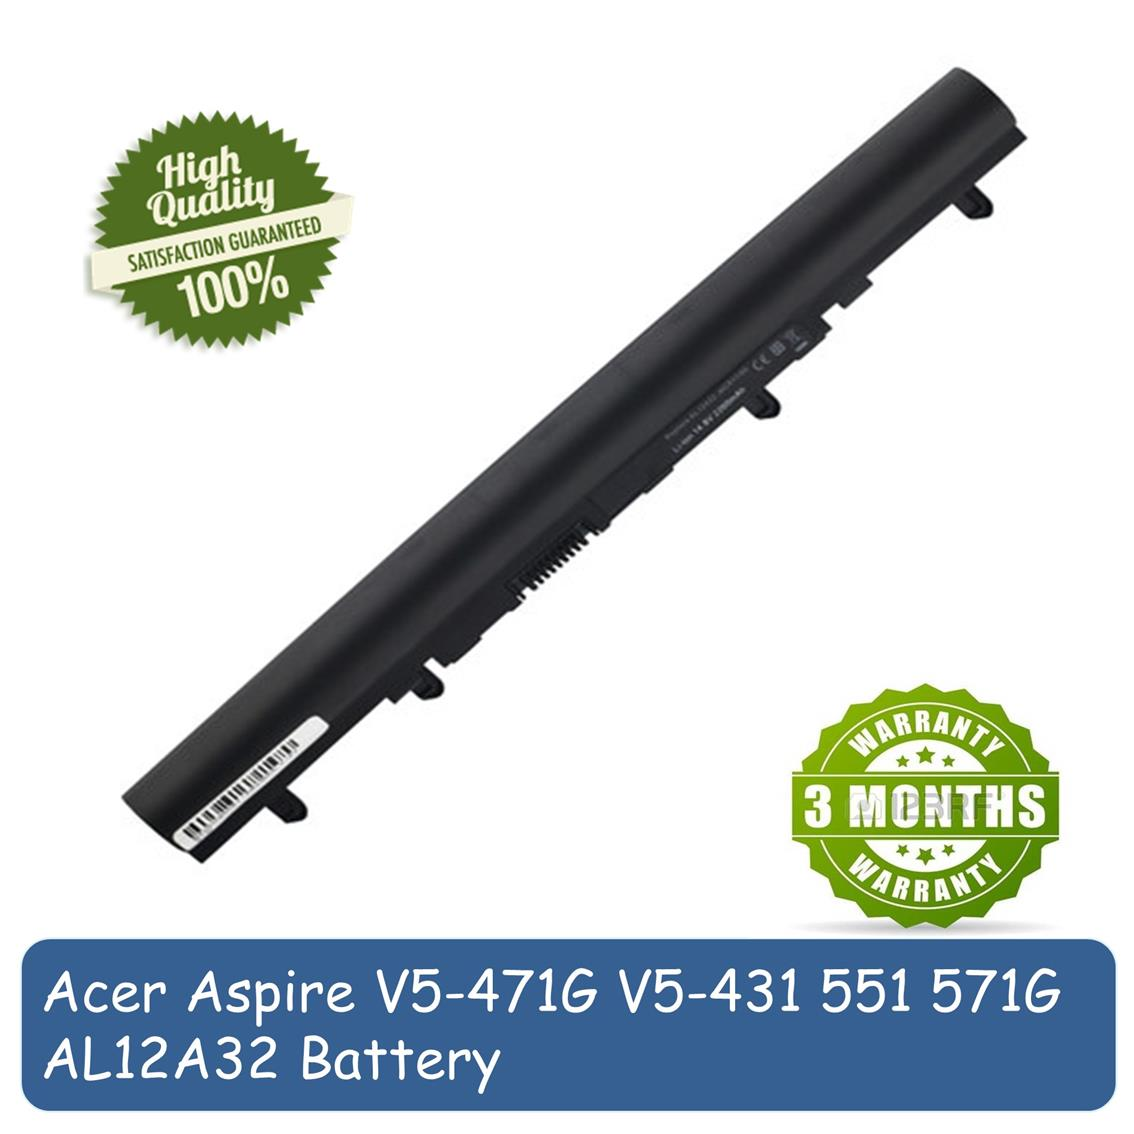 Acer Aspire V5-471G V5-431 V5-551 V5-571G AL12A32 Laptop Battery